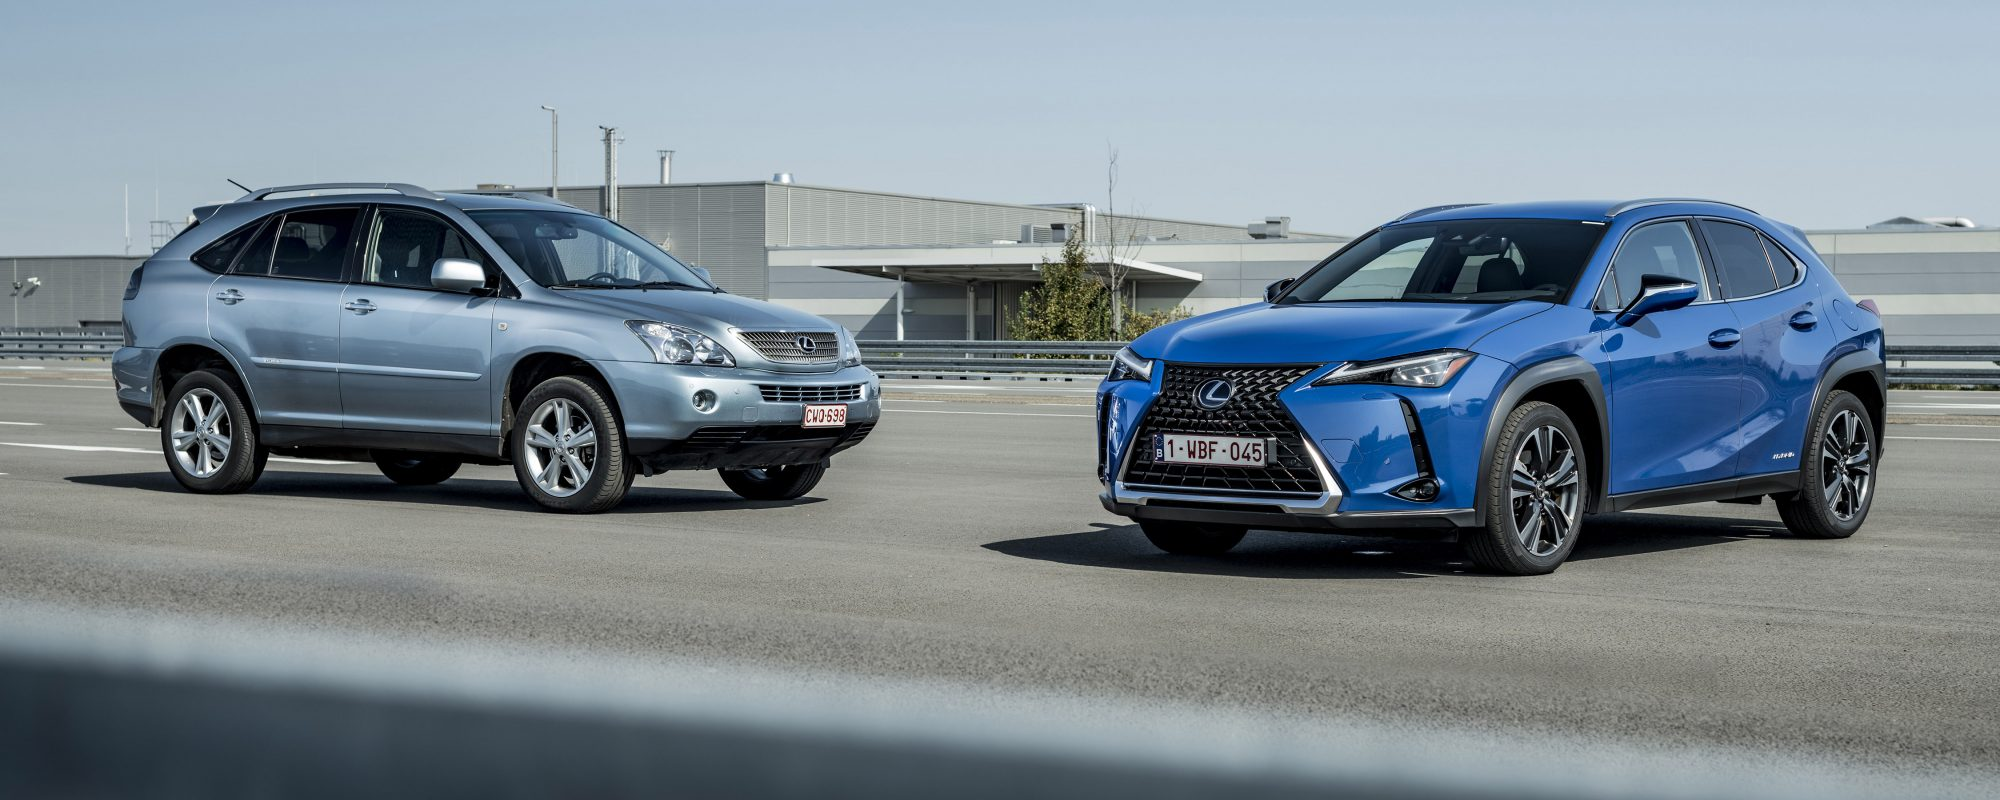 Lexus: 15 jaar hybride-efficiency